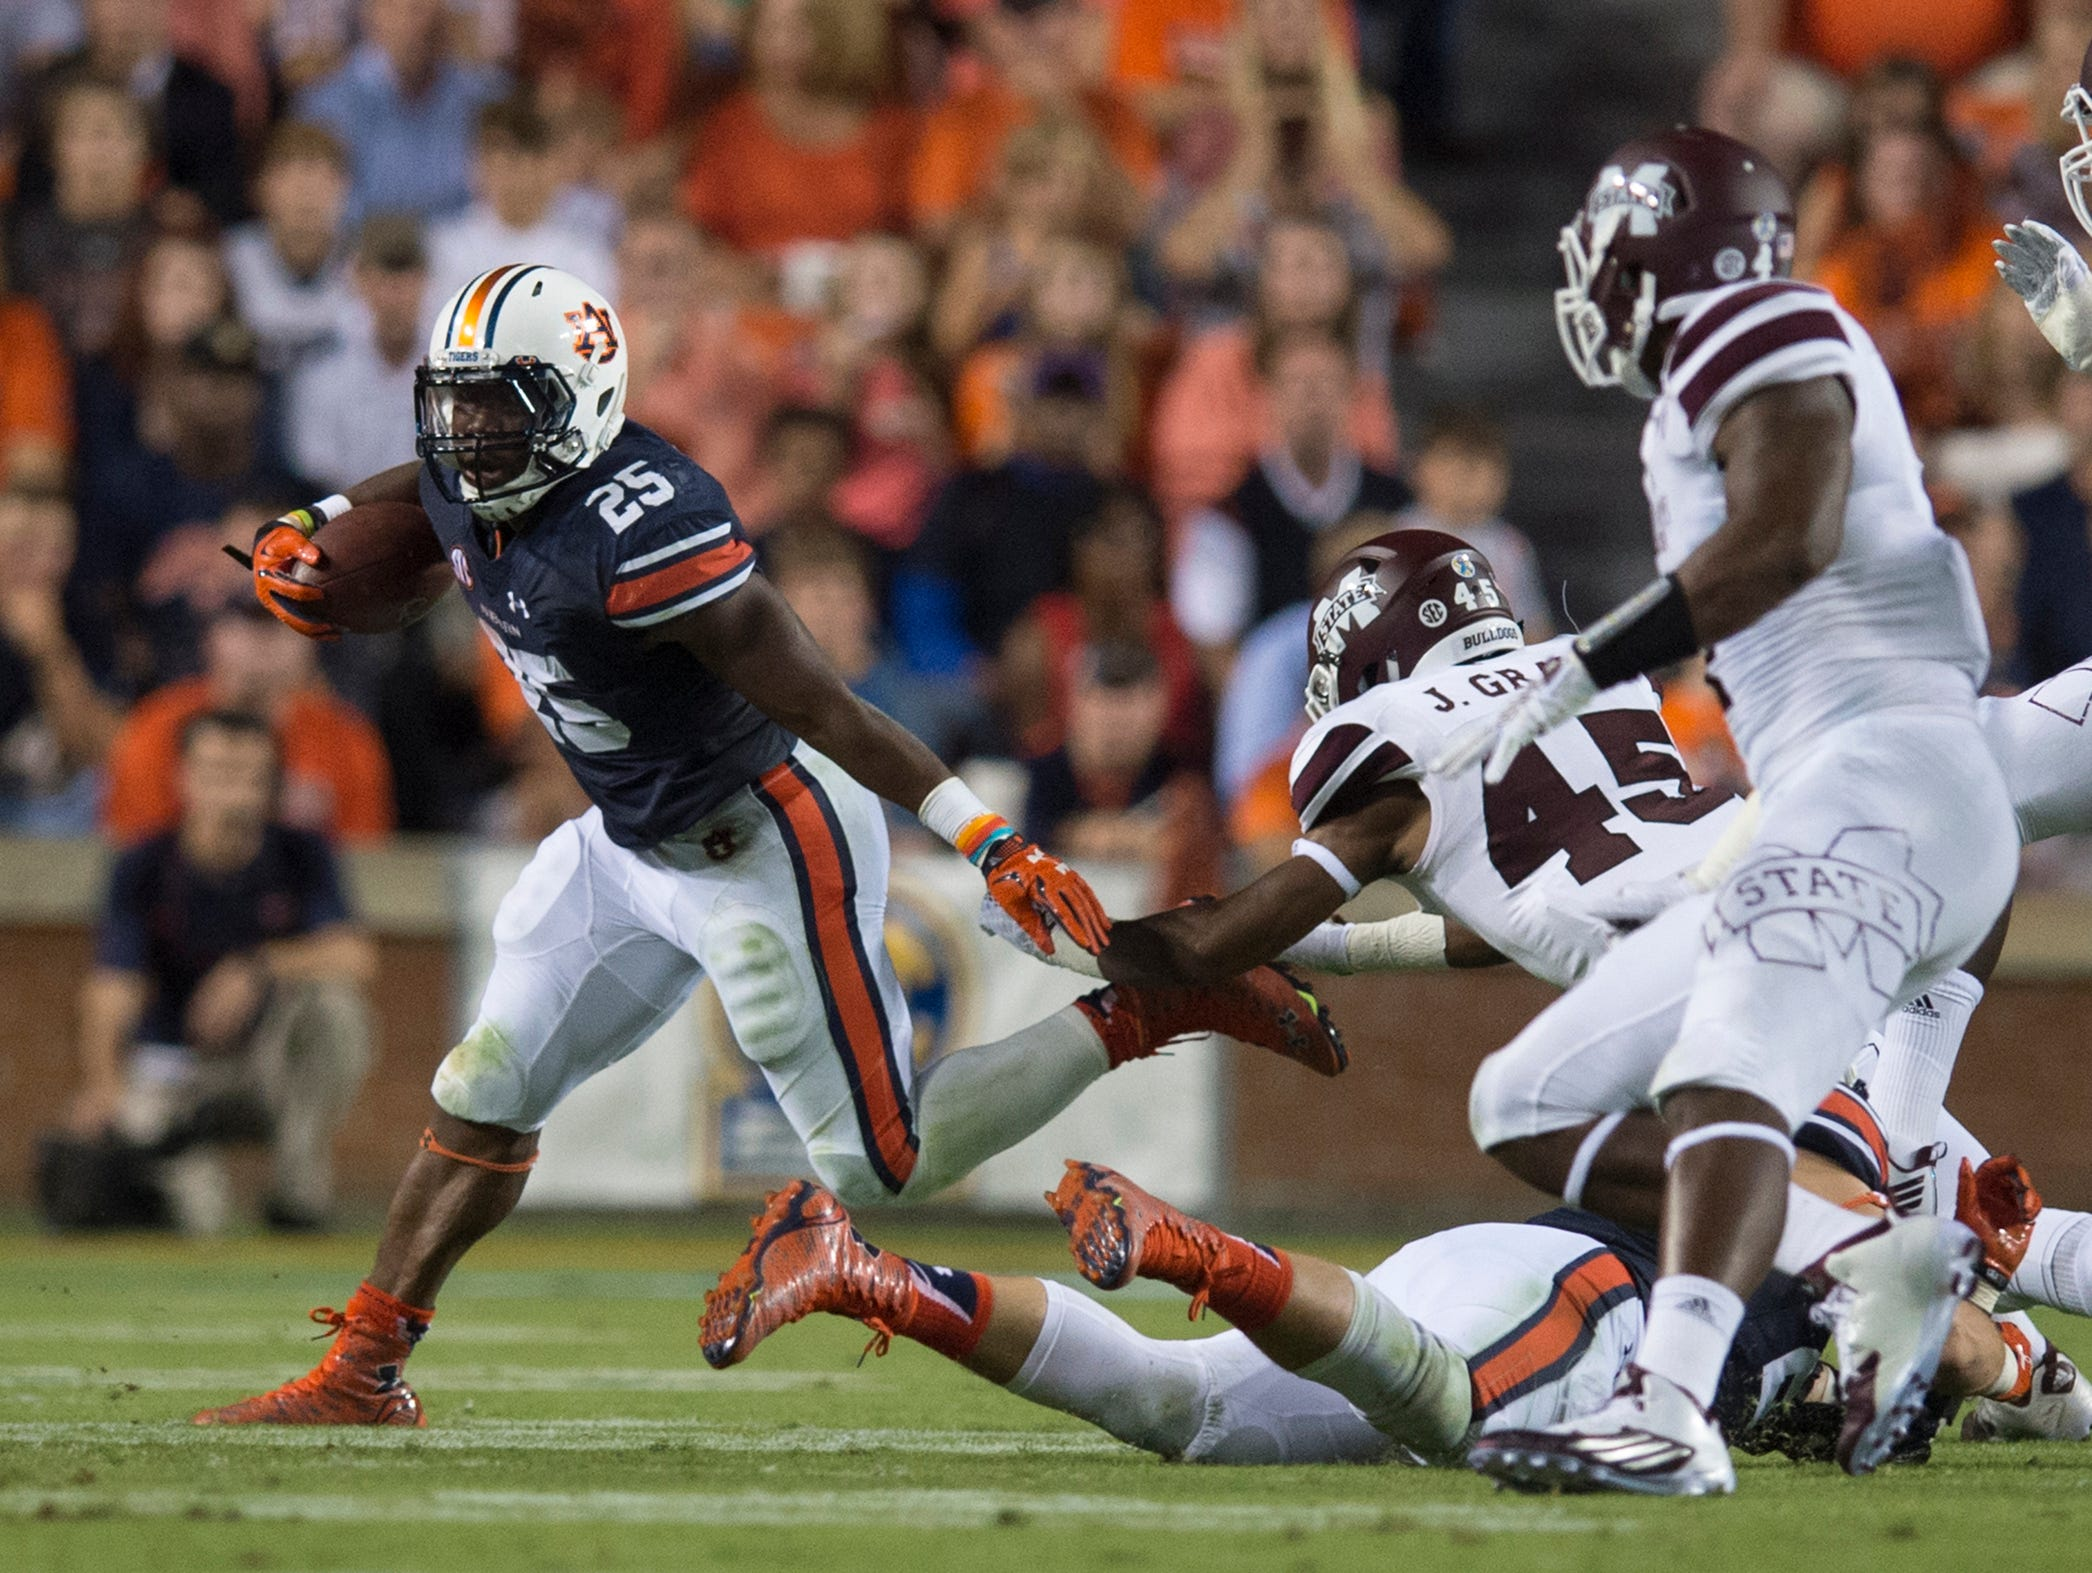 Auburn running back Peyton Barber (25) runs downfield during the NCAA football game between Auburn and Mississippi State on Saturday, Sept. 26, 2015, at Jordan-Hare Stadium in Auburn, Ala. Albert Cesare / Advertiser